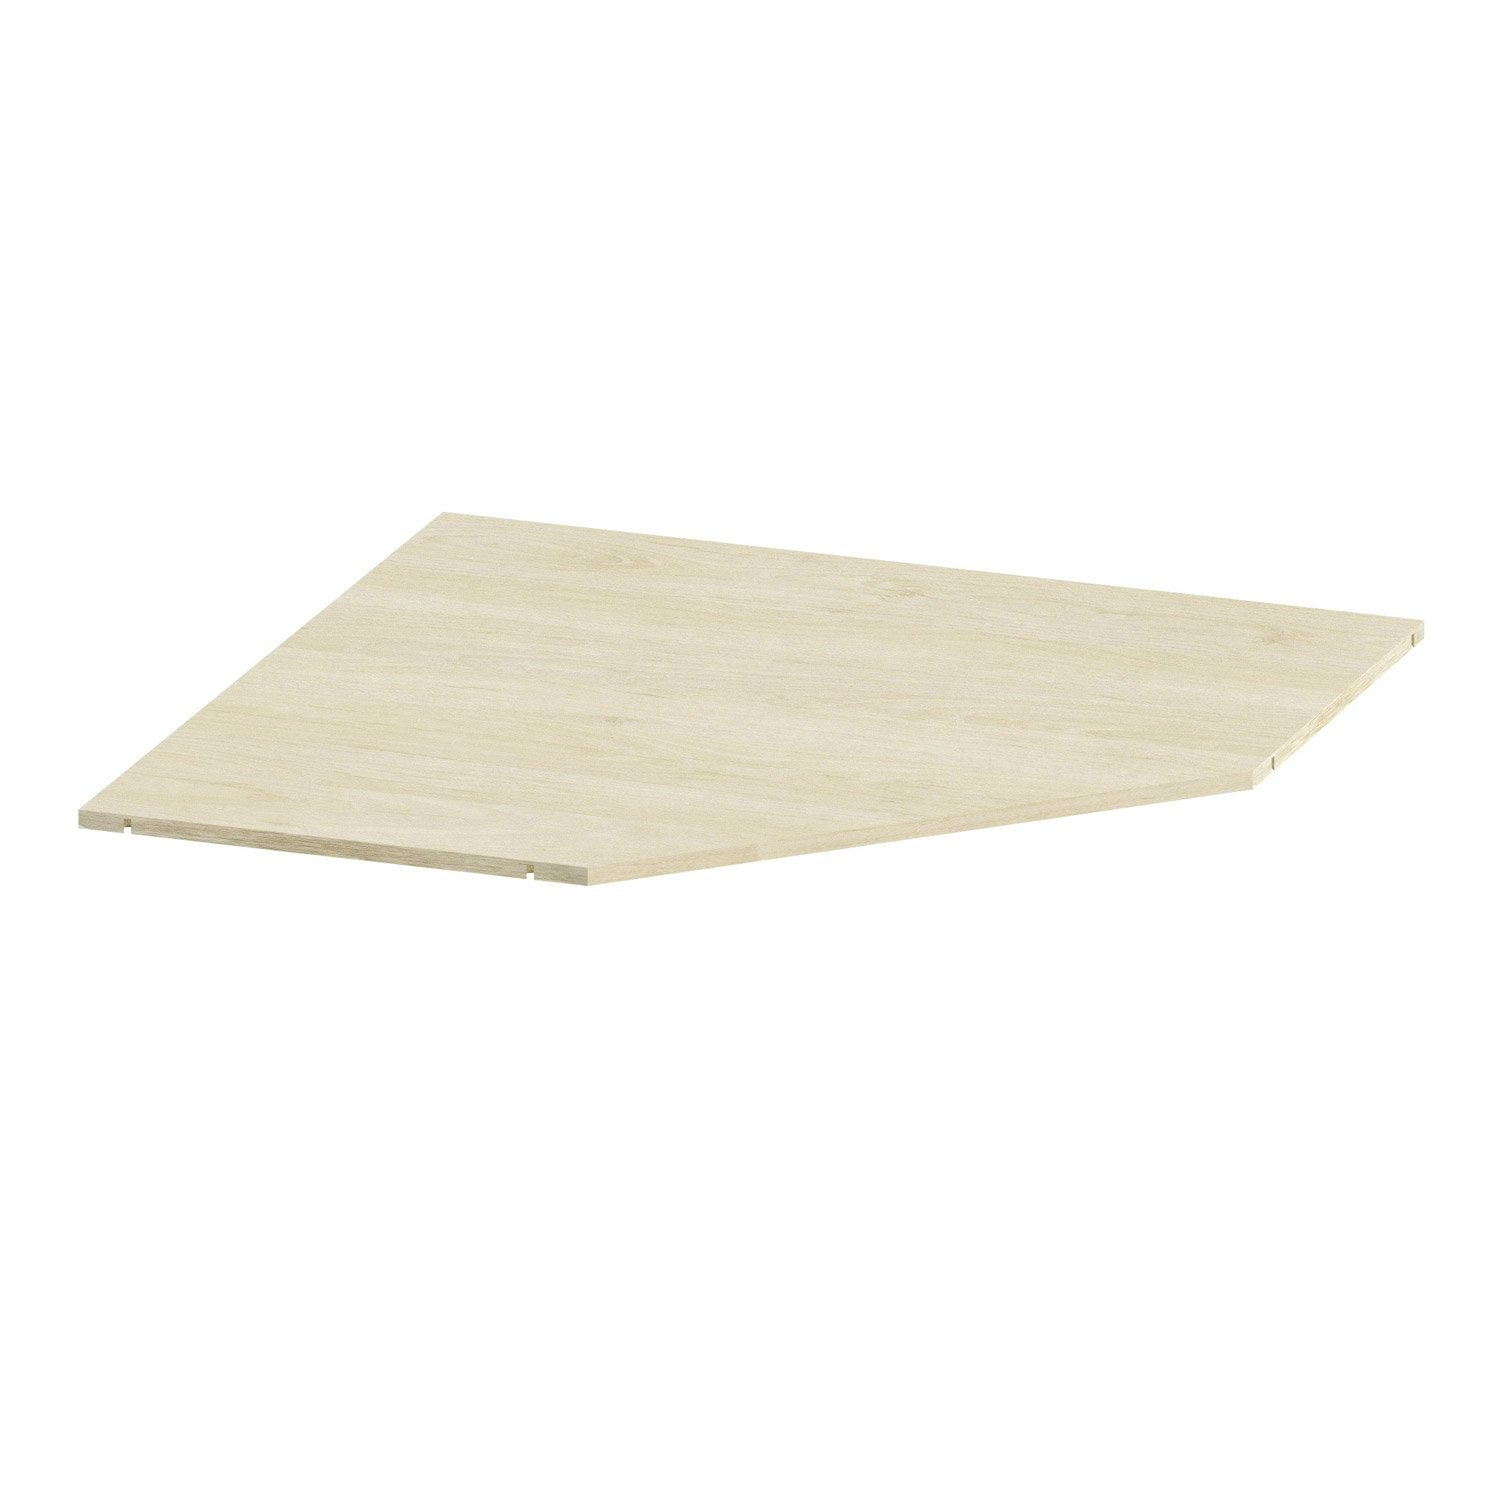 Tablette d 39 angle spaceo home 1 6 x 85 7 x 85 7 cm effet - Tablette chene leroy merlin ...